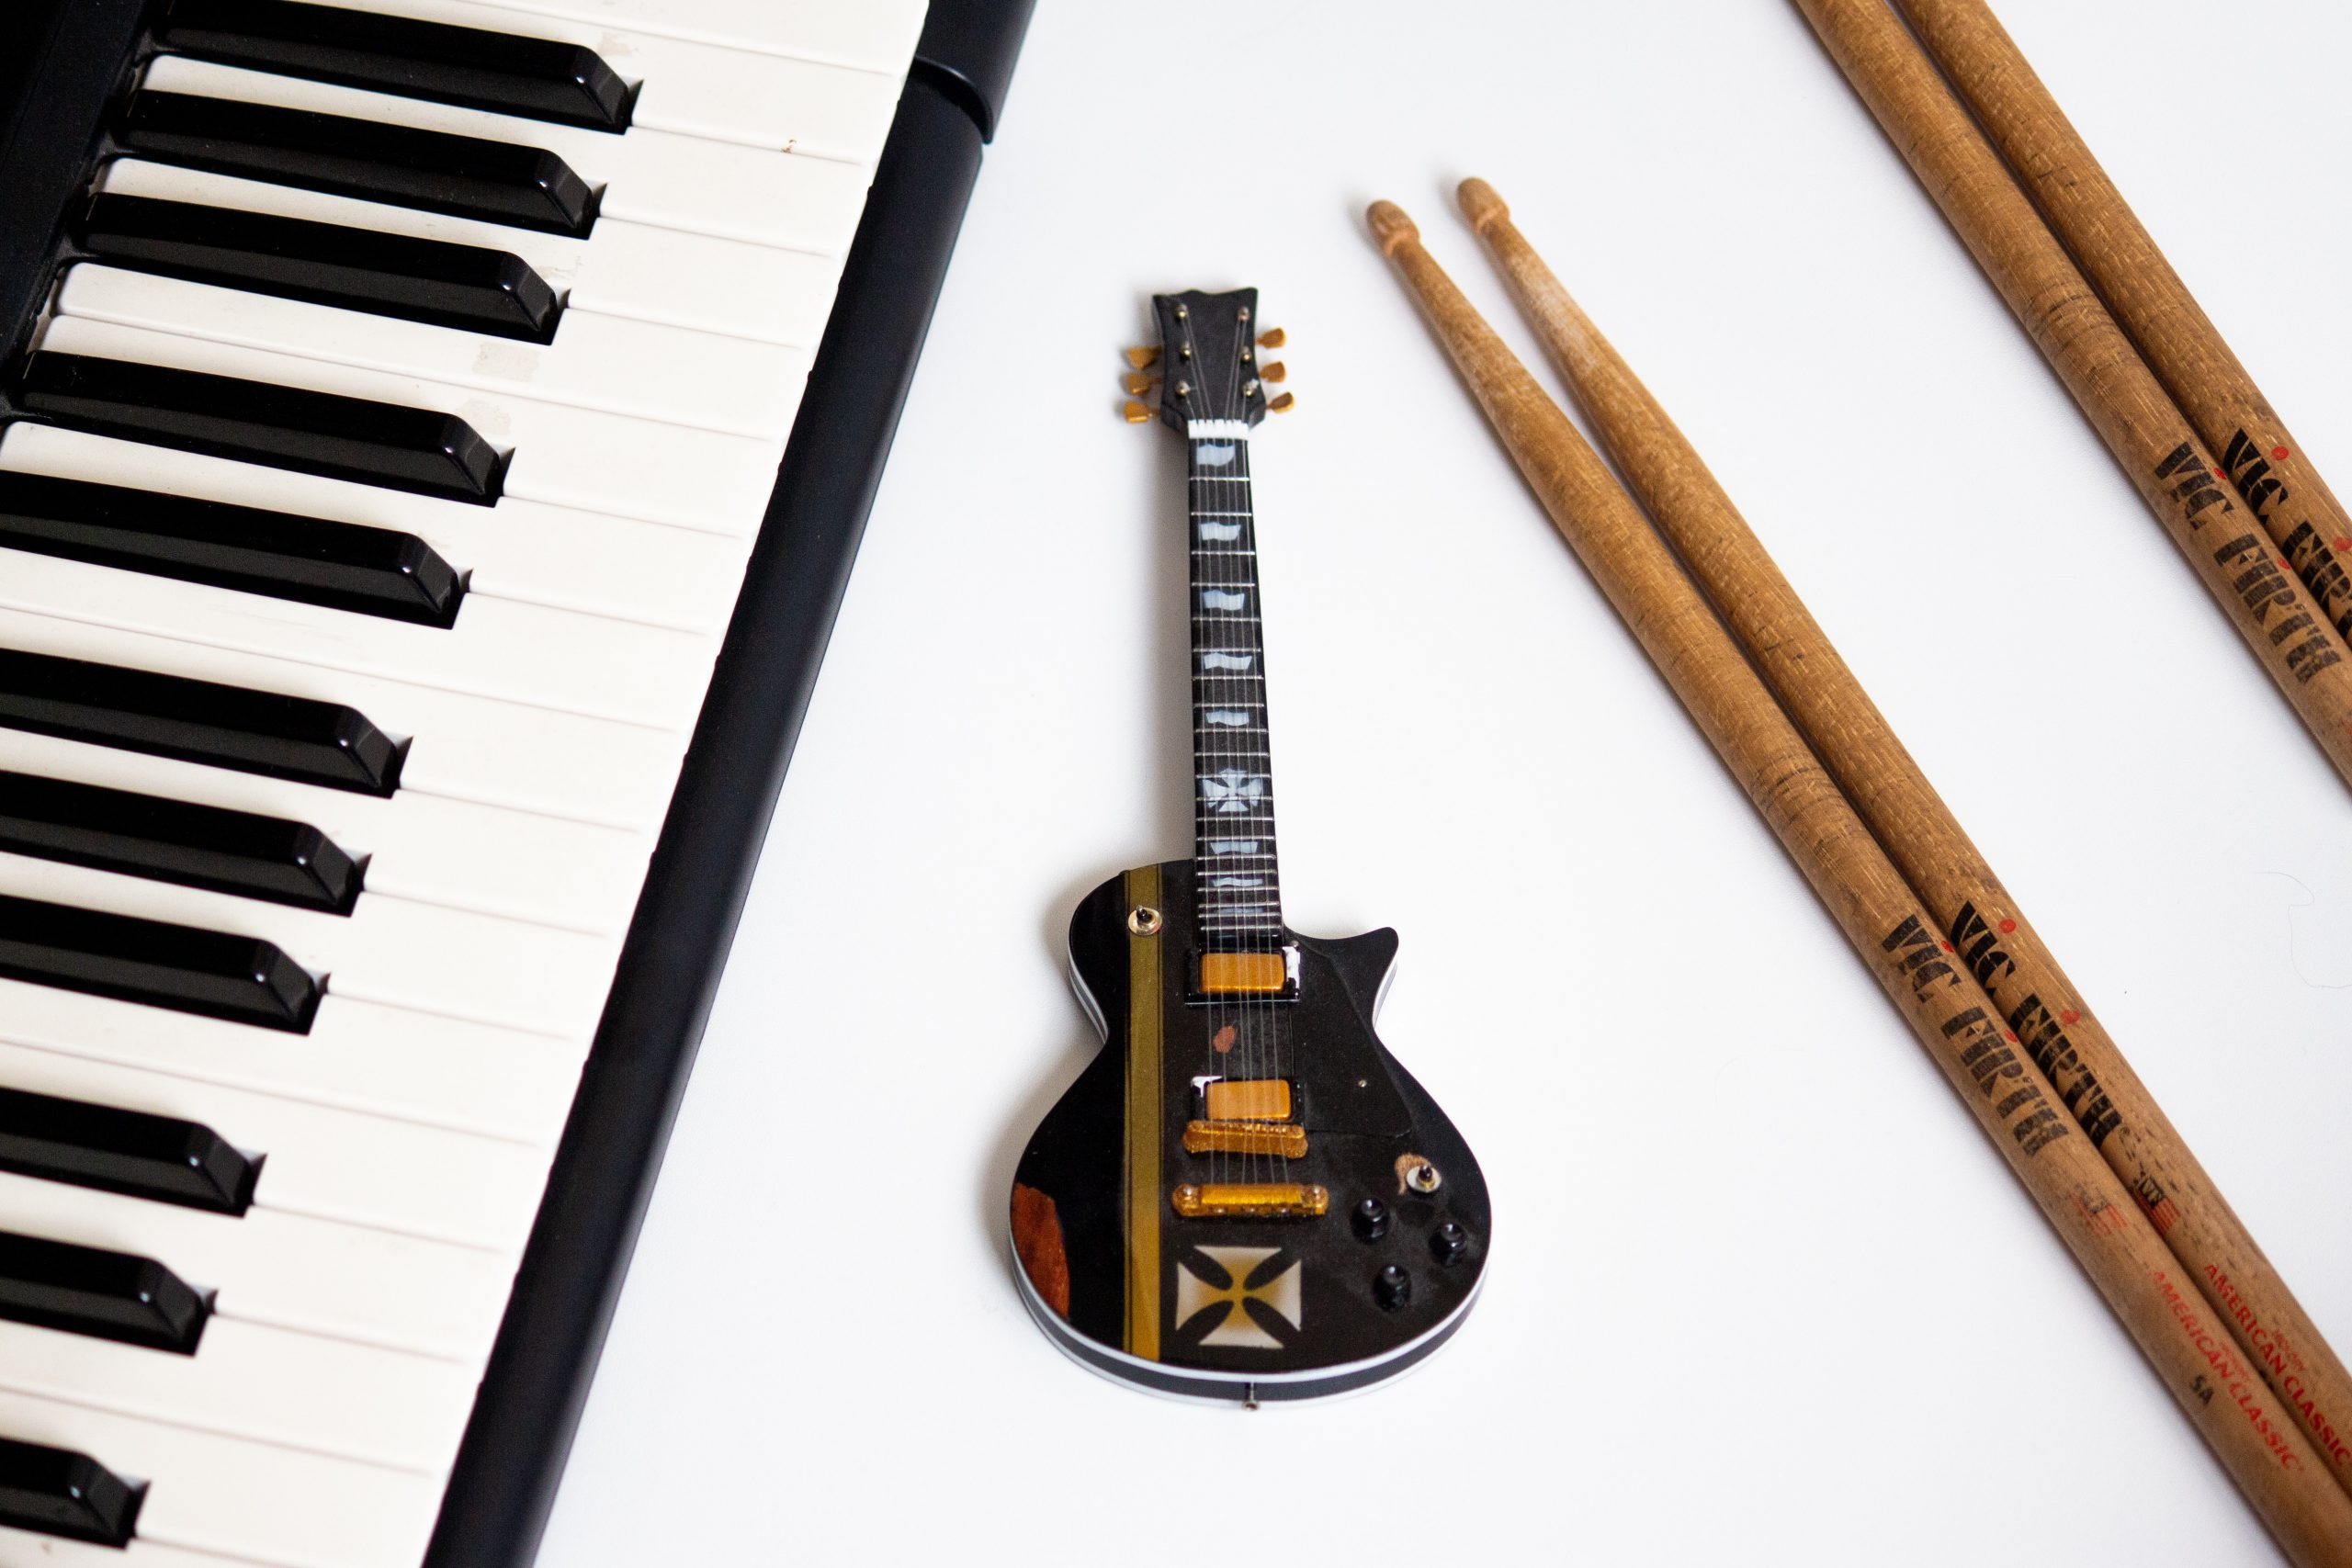 black electric guitar on white surface